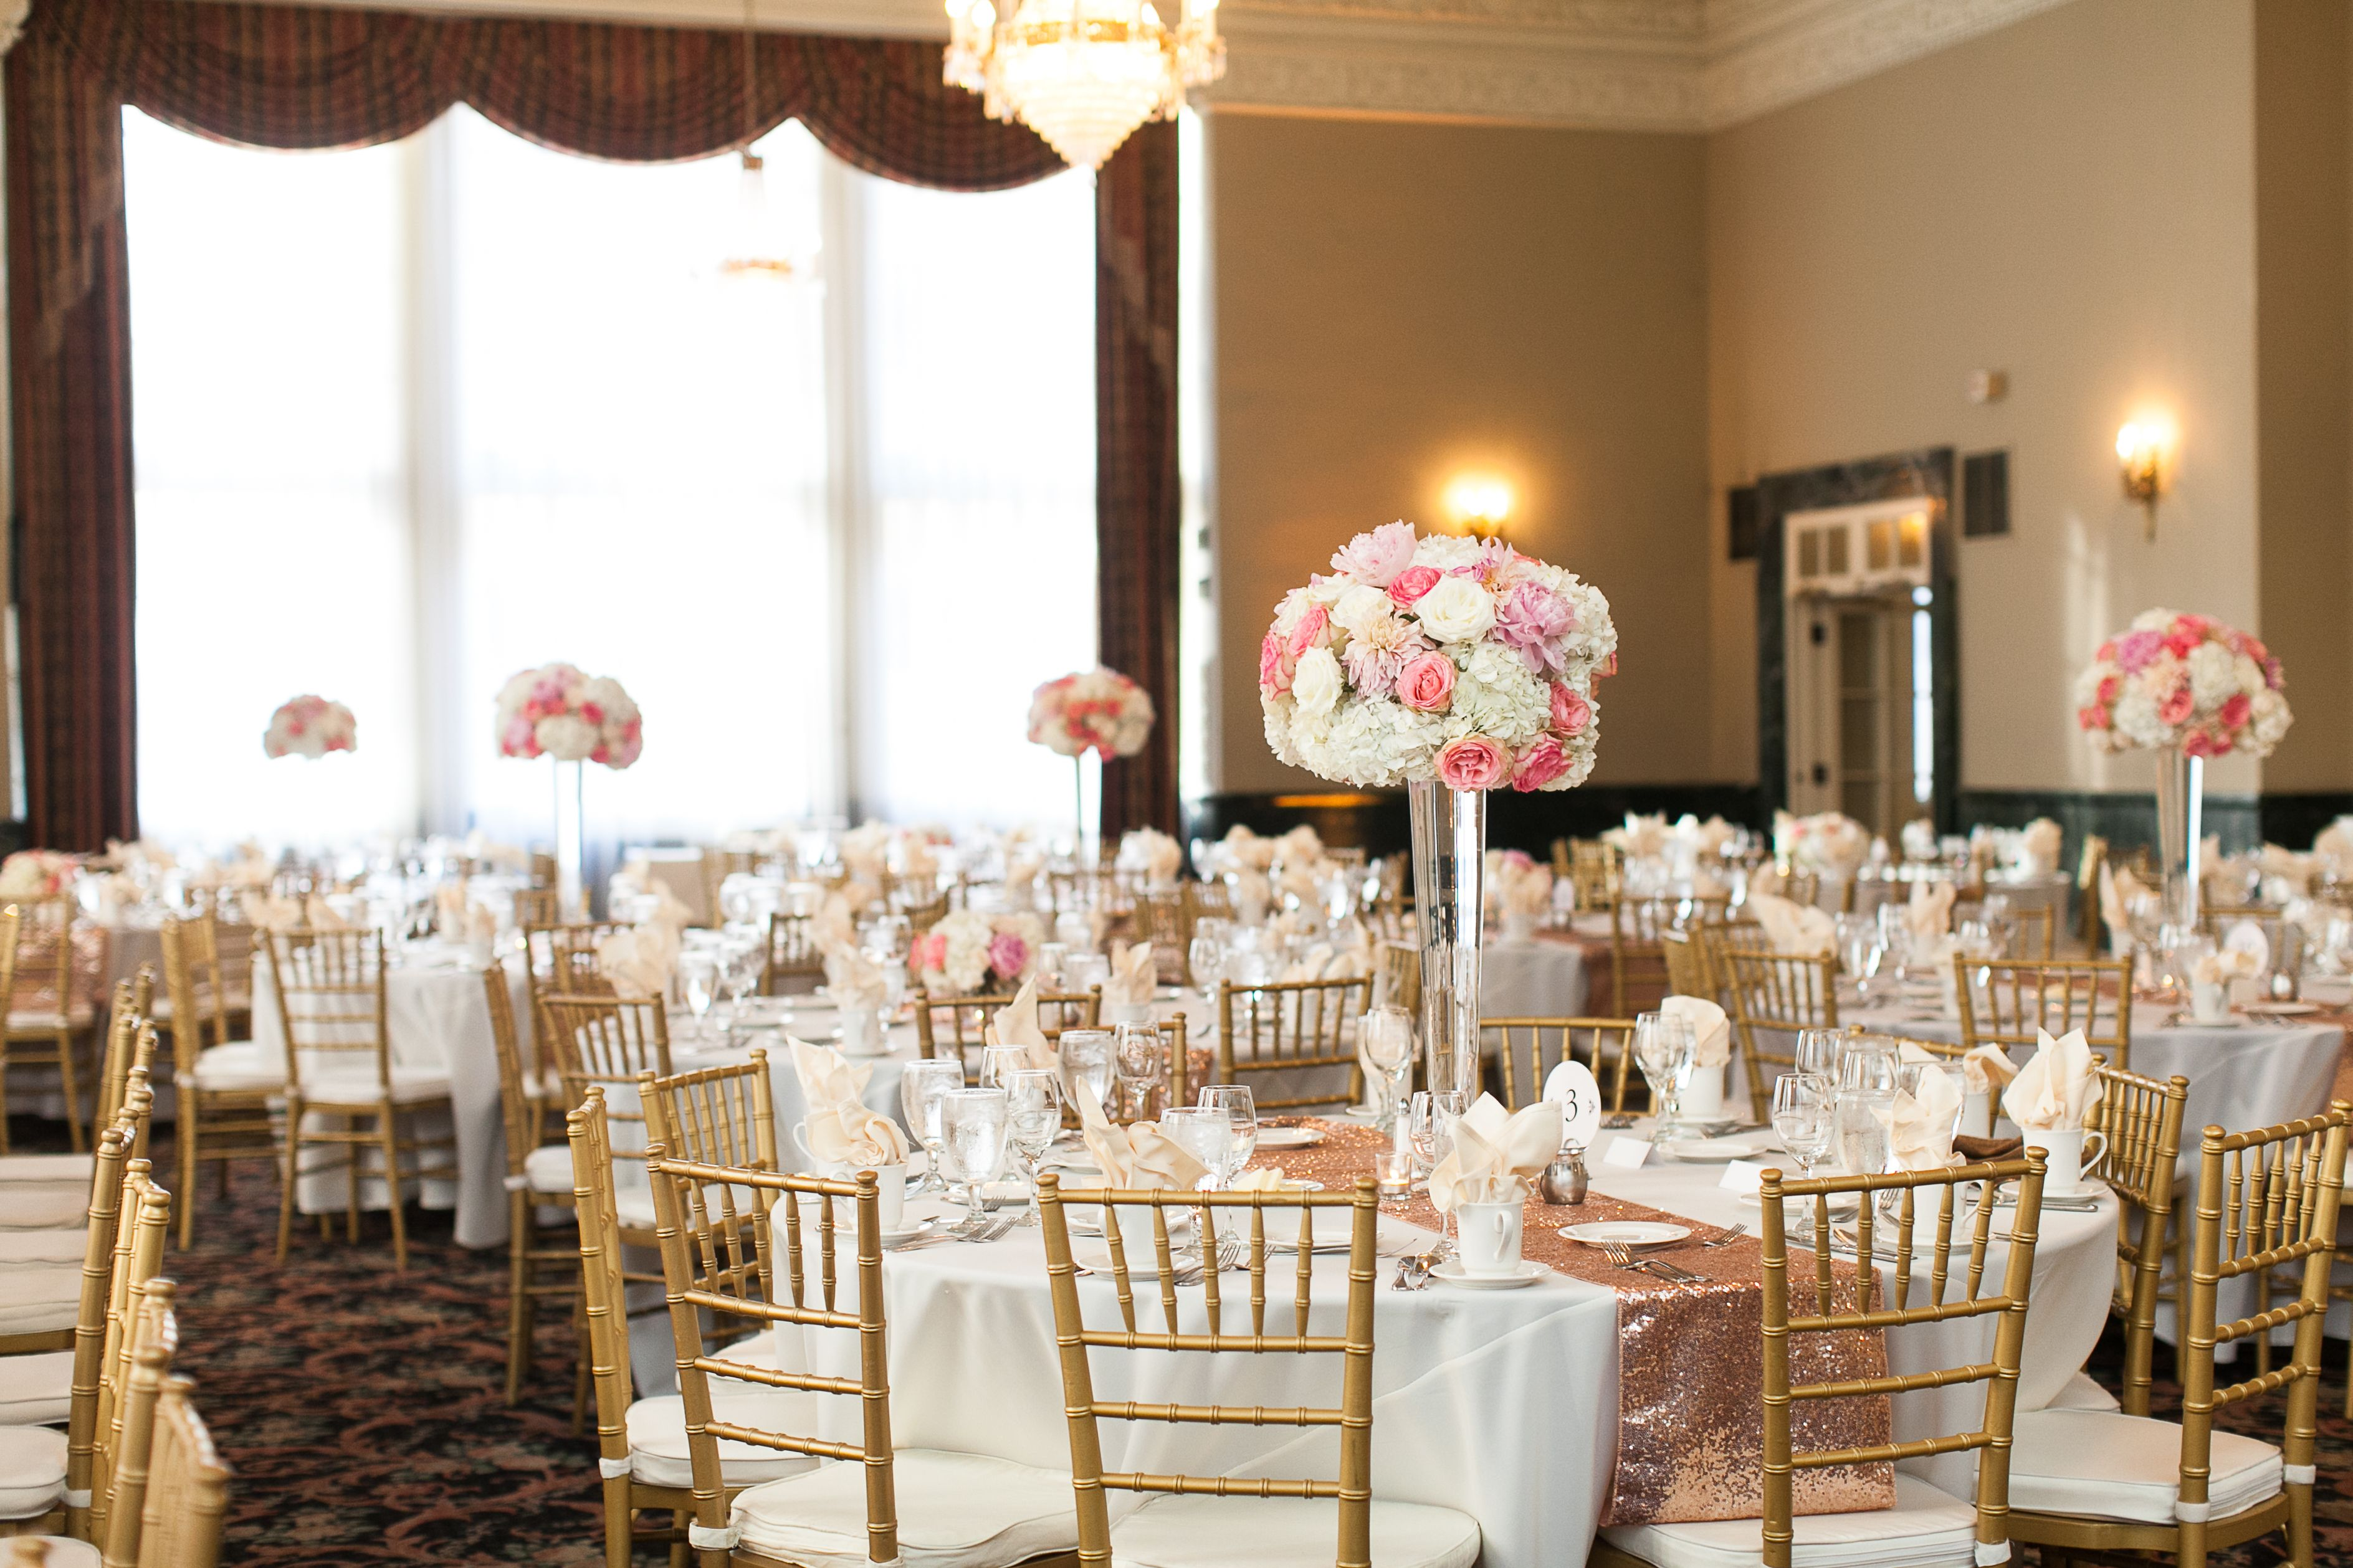 Elegant Wedding Reception At St Paul Athletic Club Mn Venue Tall Centerpieces By Bel Fiore A Minnesota Florist Betsy Wall